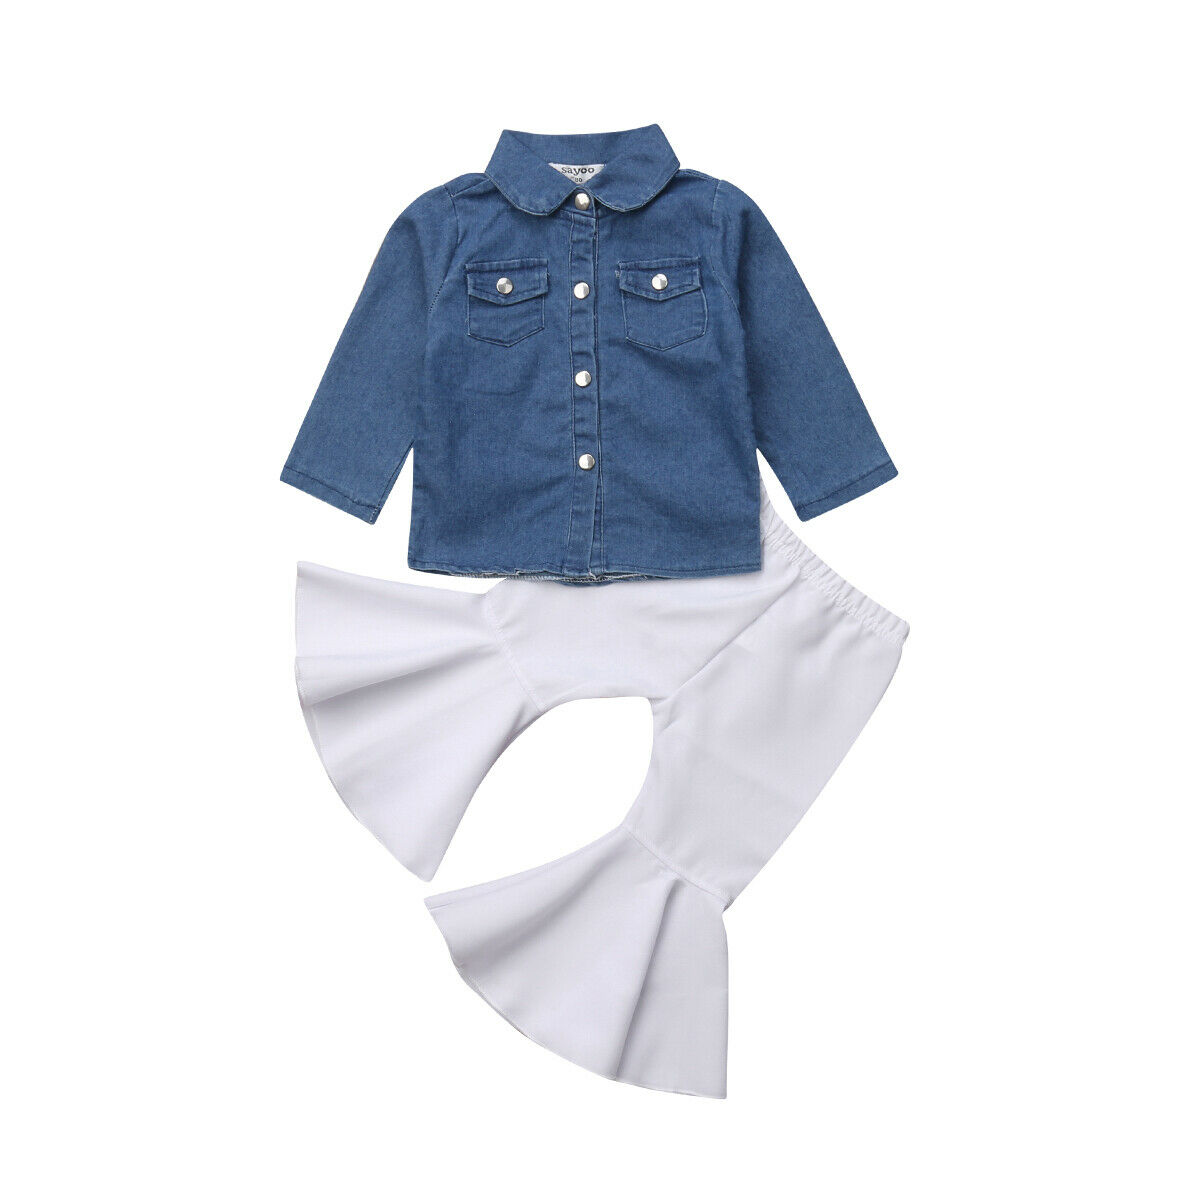 2PCS Toddler Kids Baby Girls Outfits Clothes Long Sleeve Shirt Tops+Jeans Pants